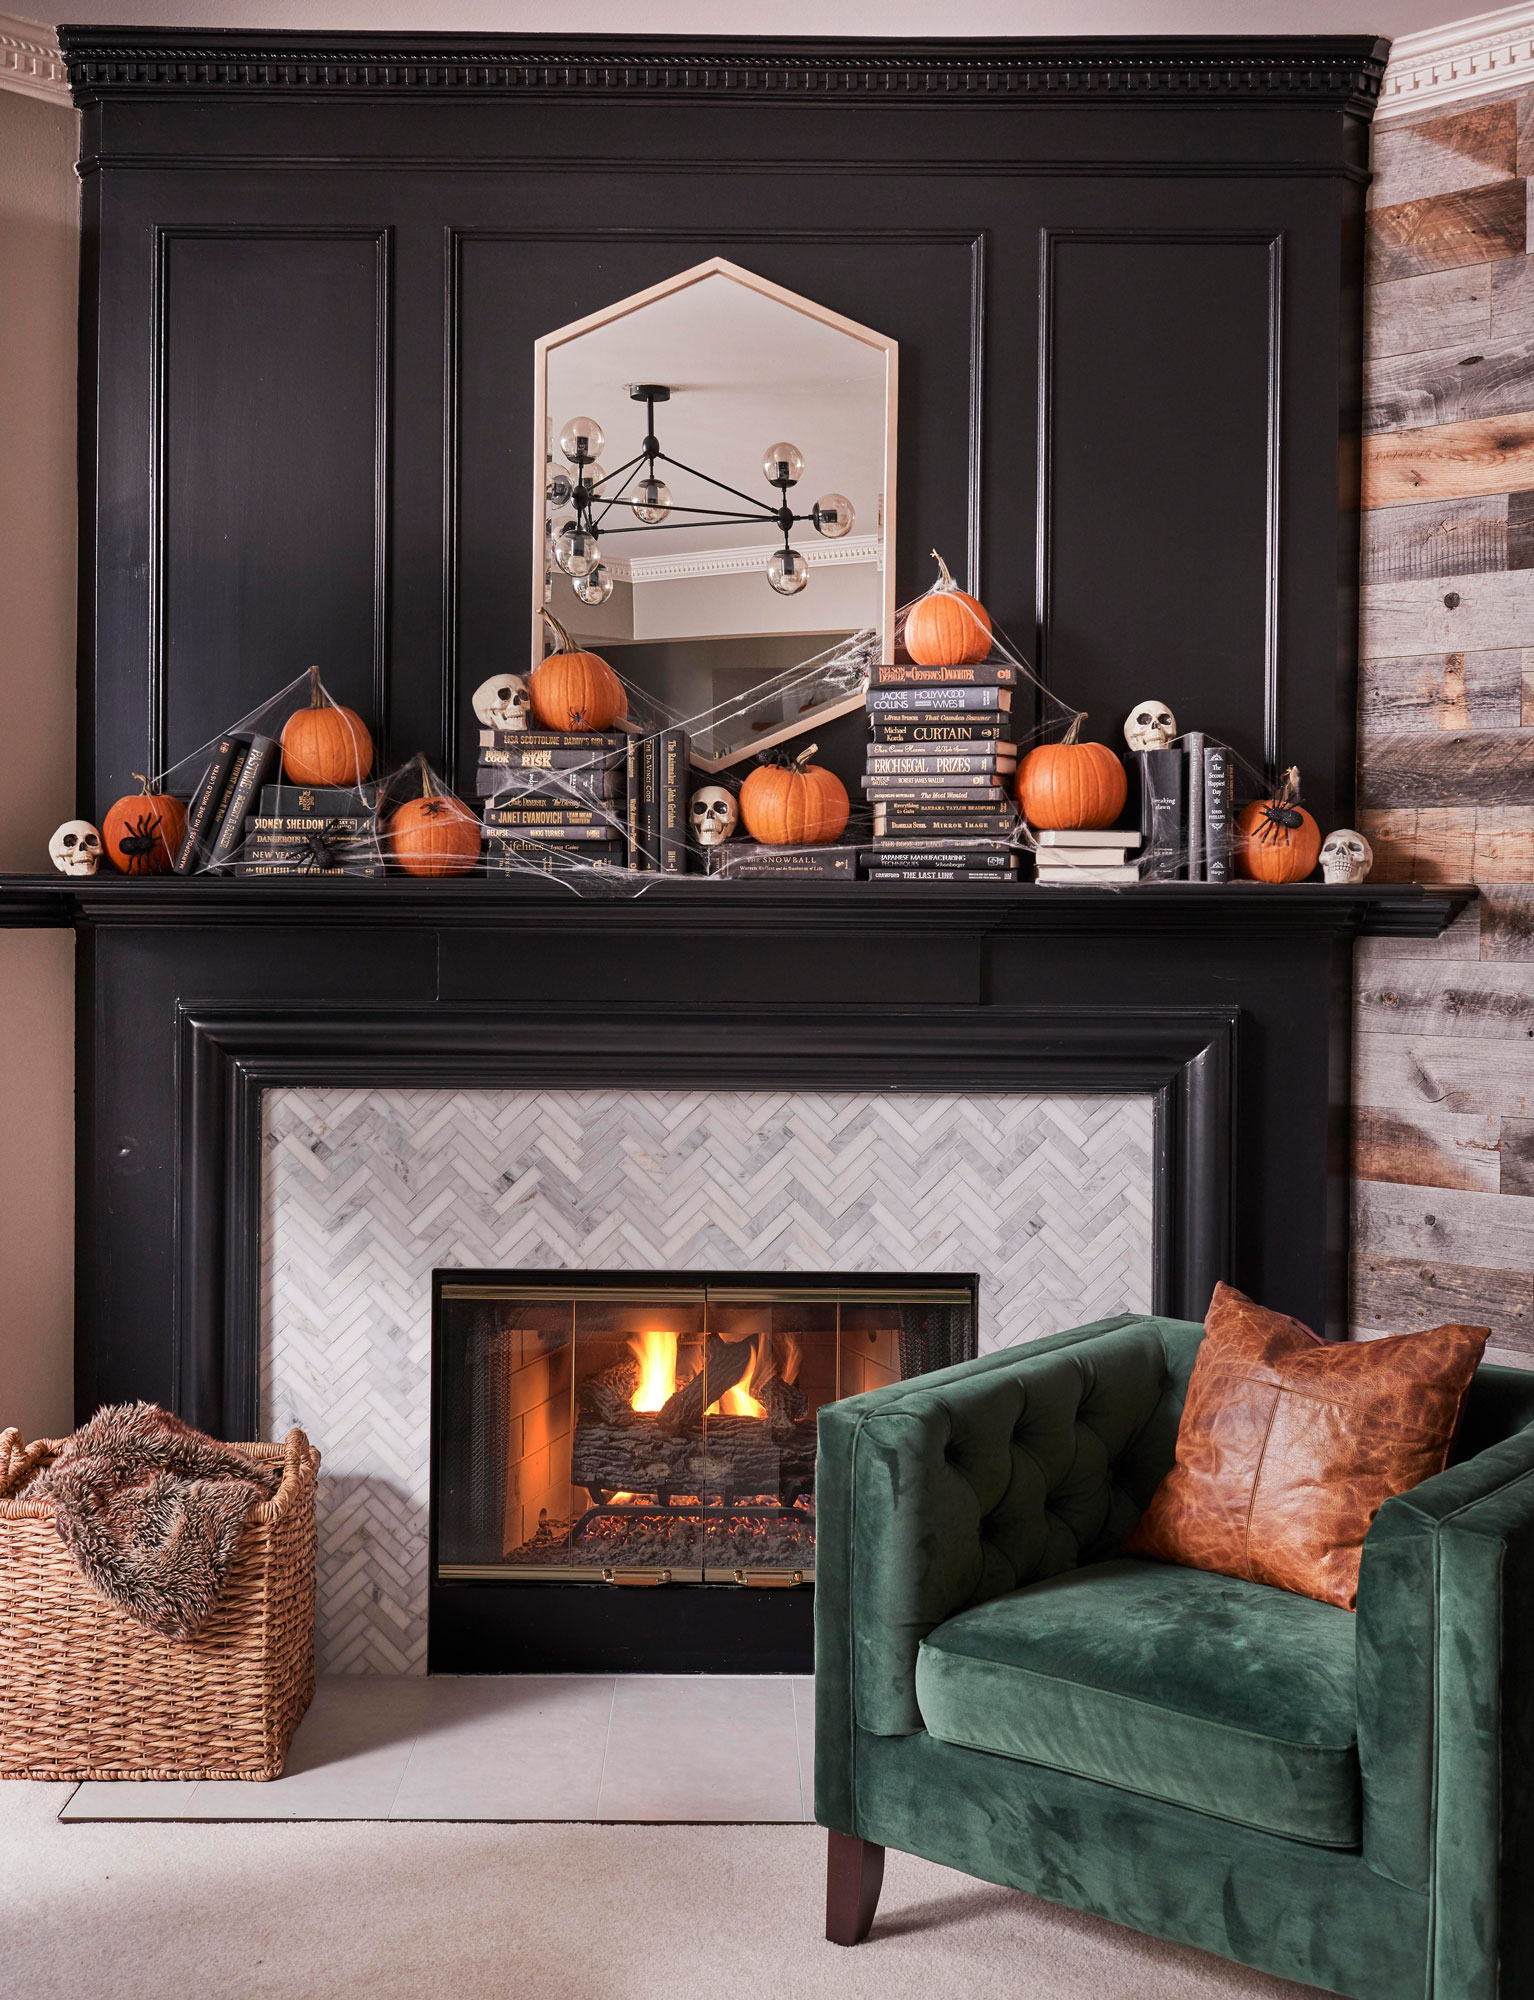 Spooky mantel with pumpkins